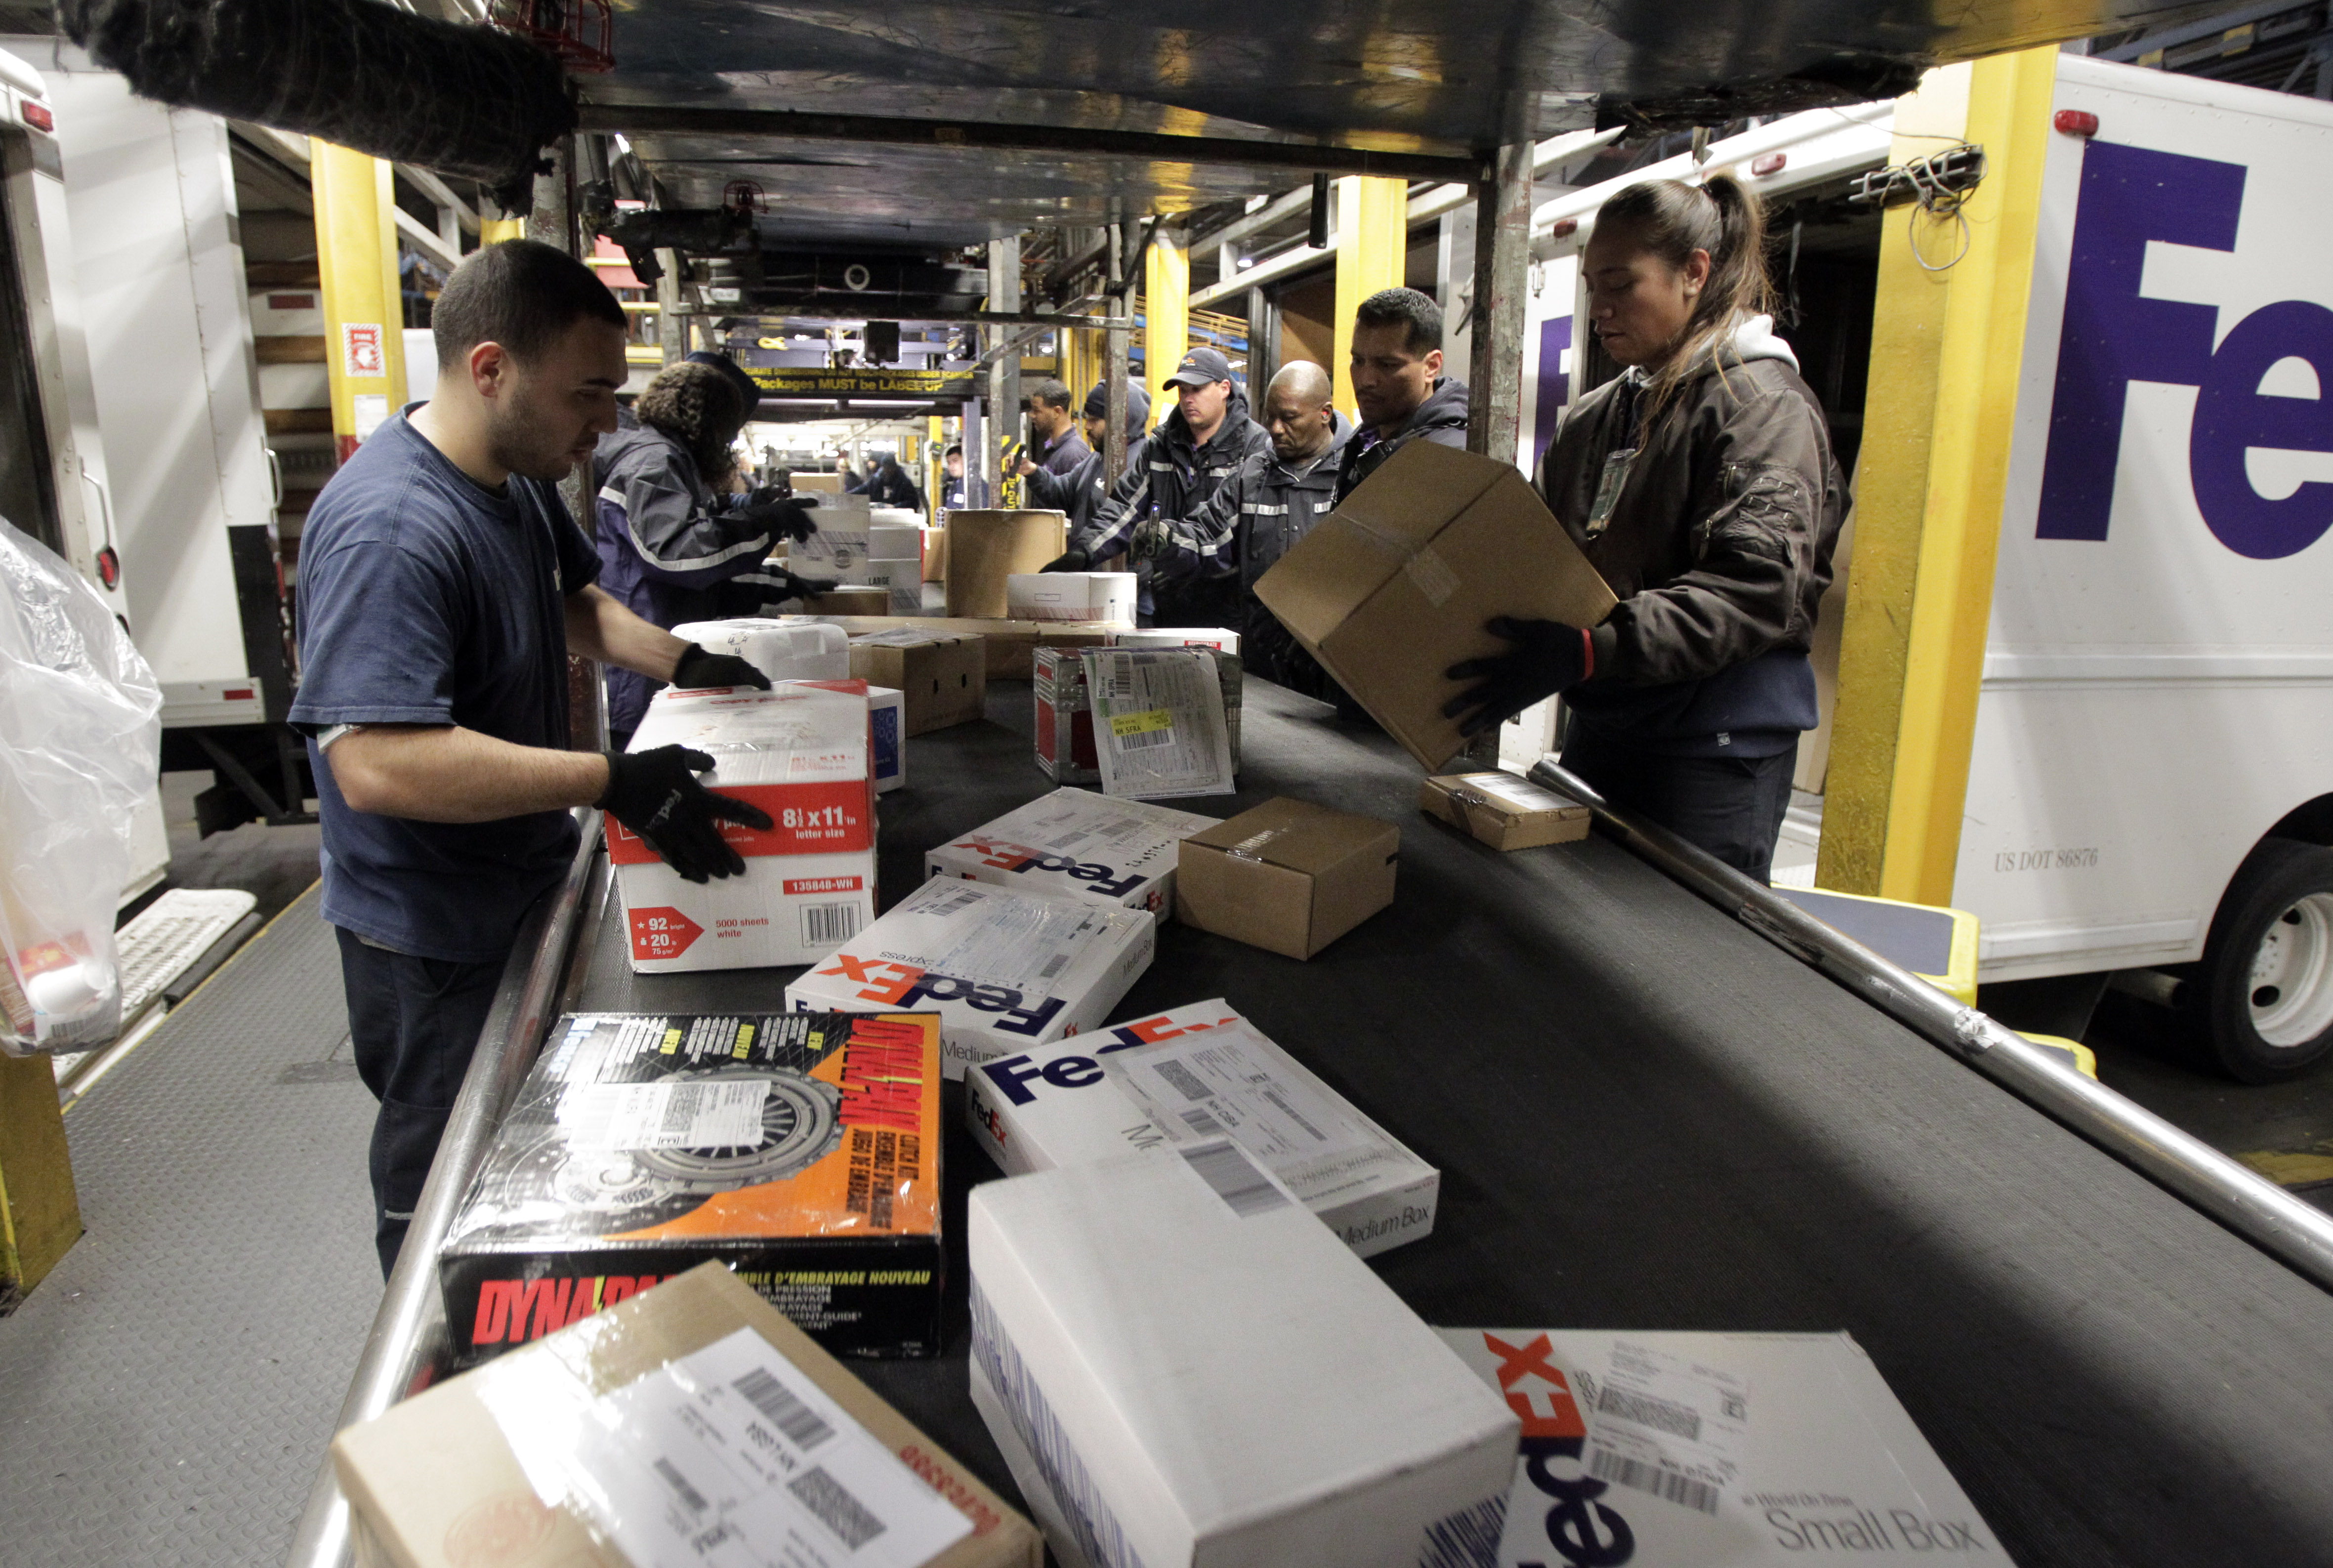 special technology staff fill in for elves at fedex hub